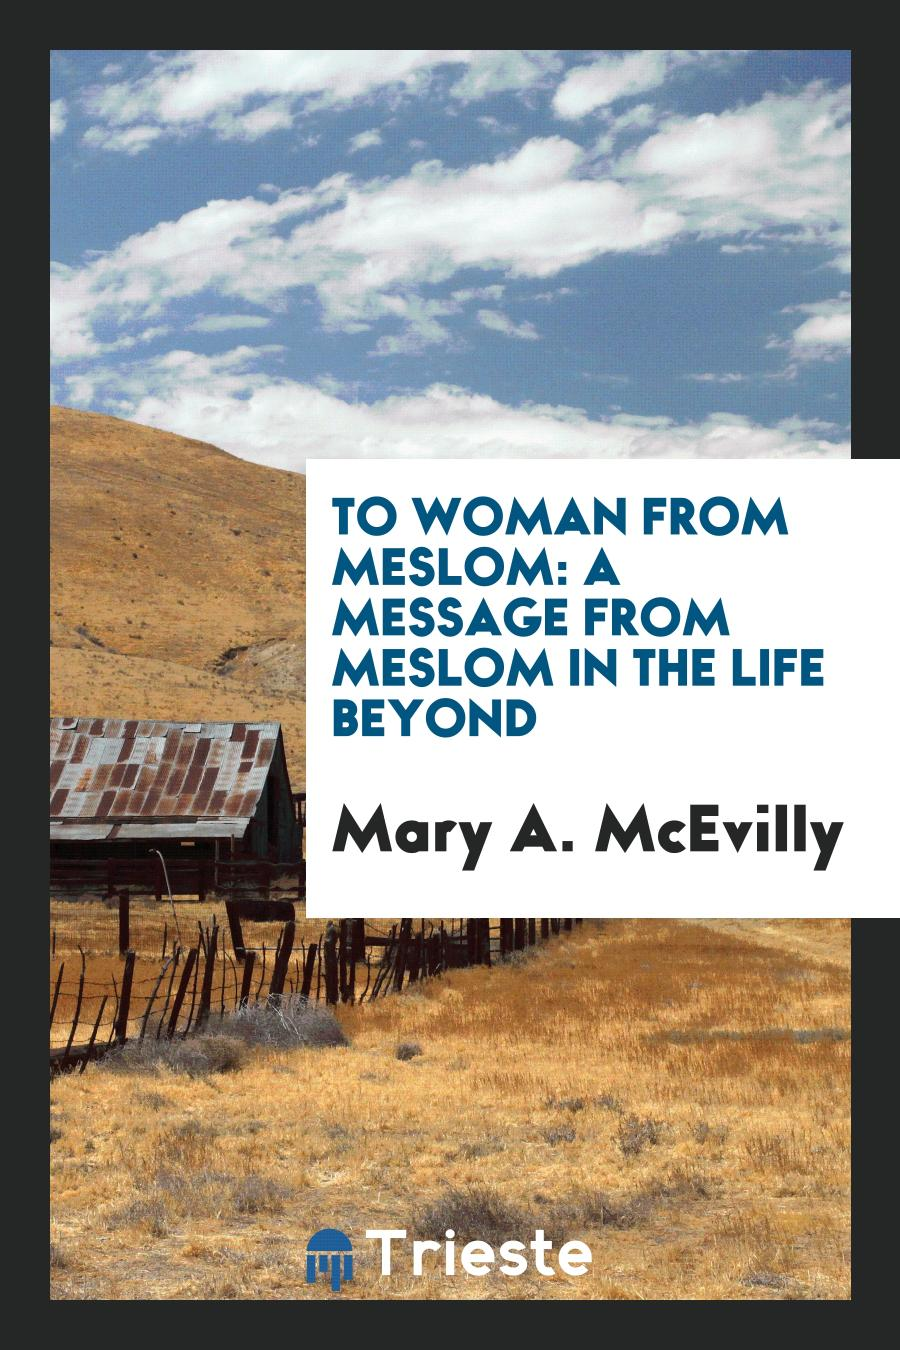 Mary A. McEvilly - To Woman from Meslom: A Message from Meslom in the Life Beyond